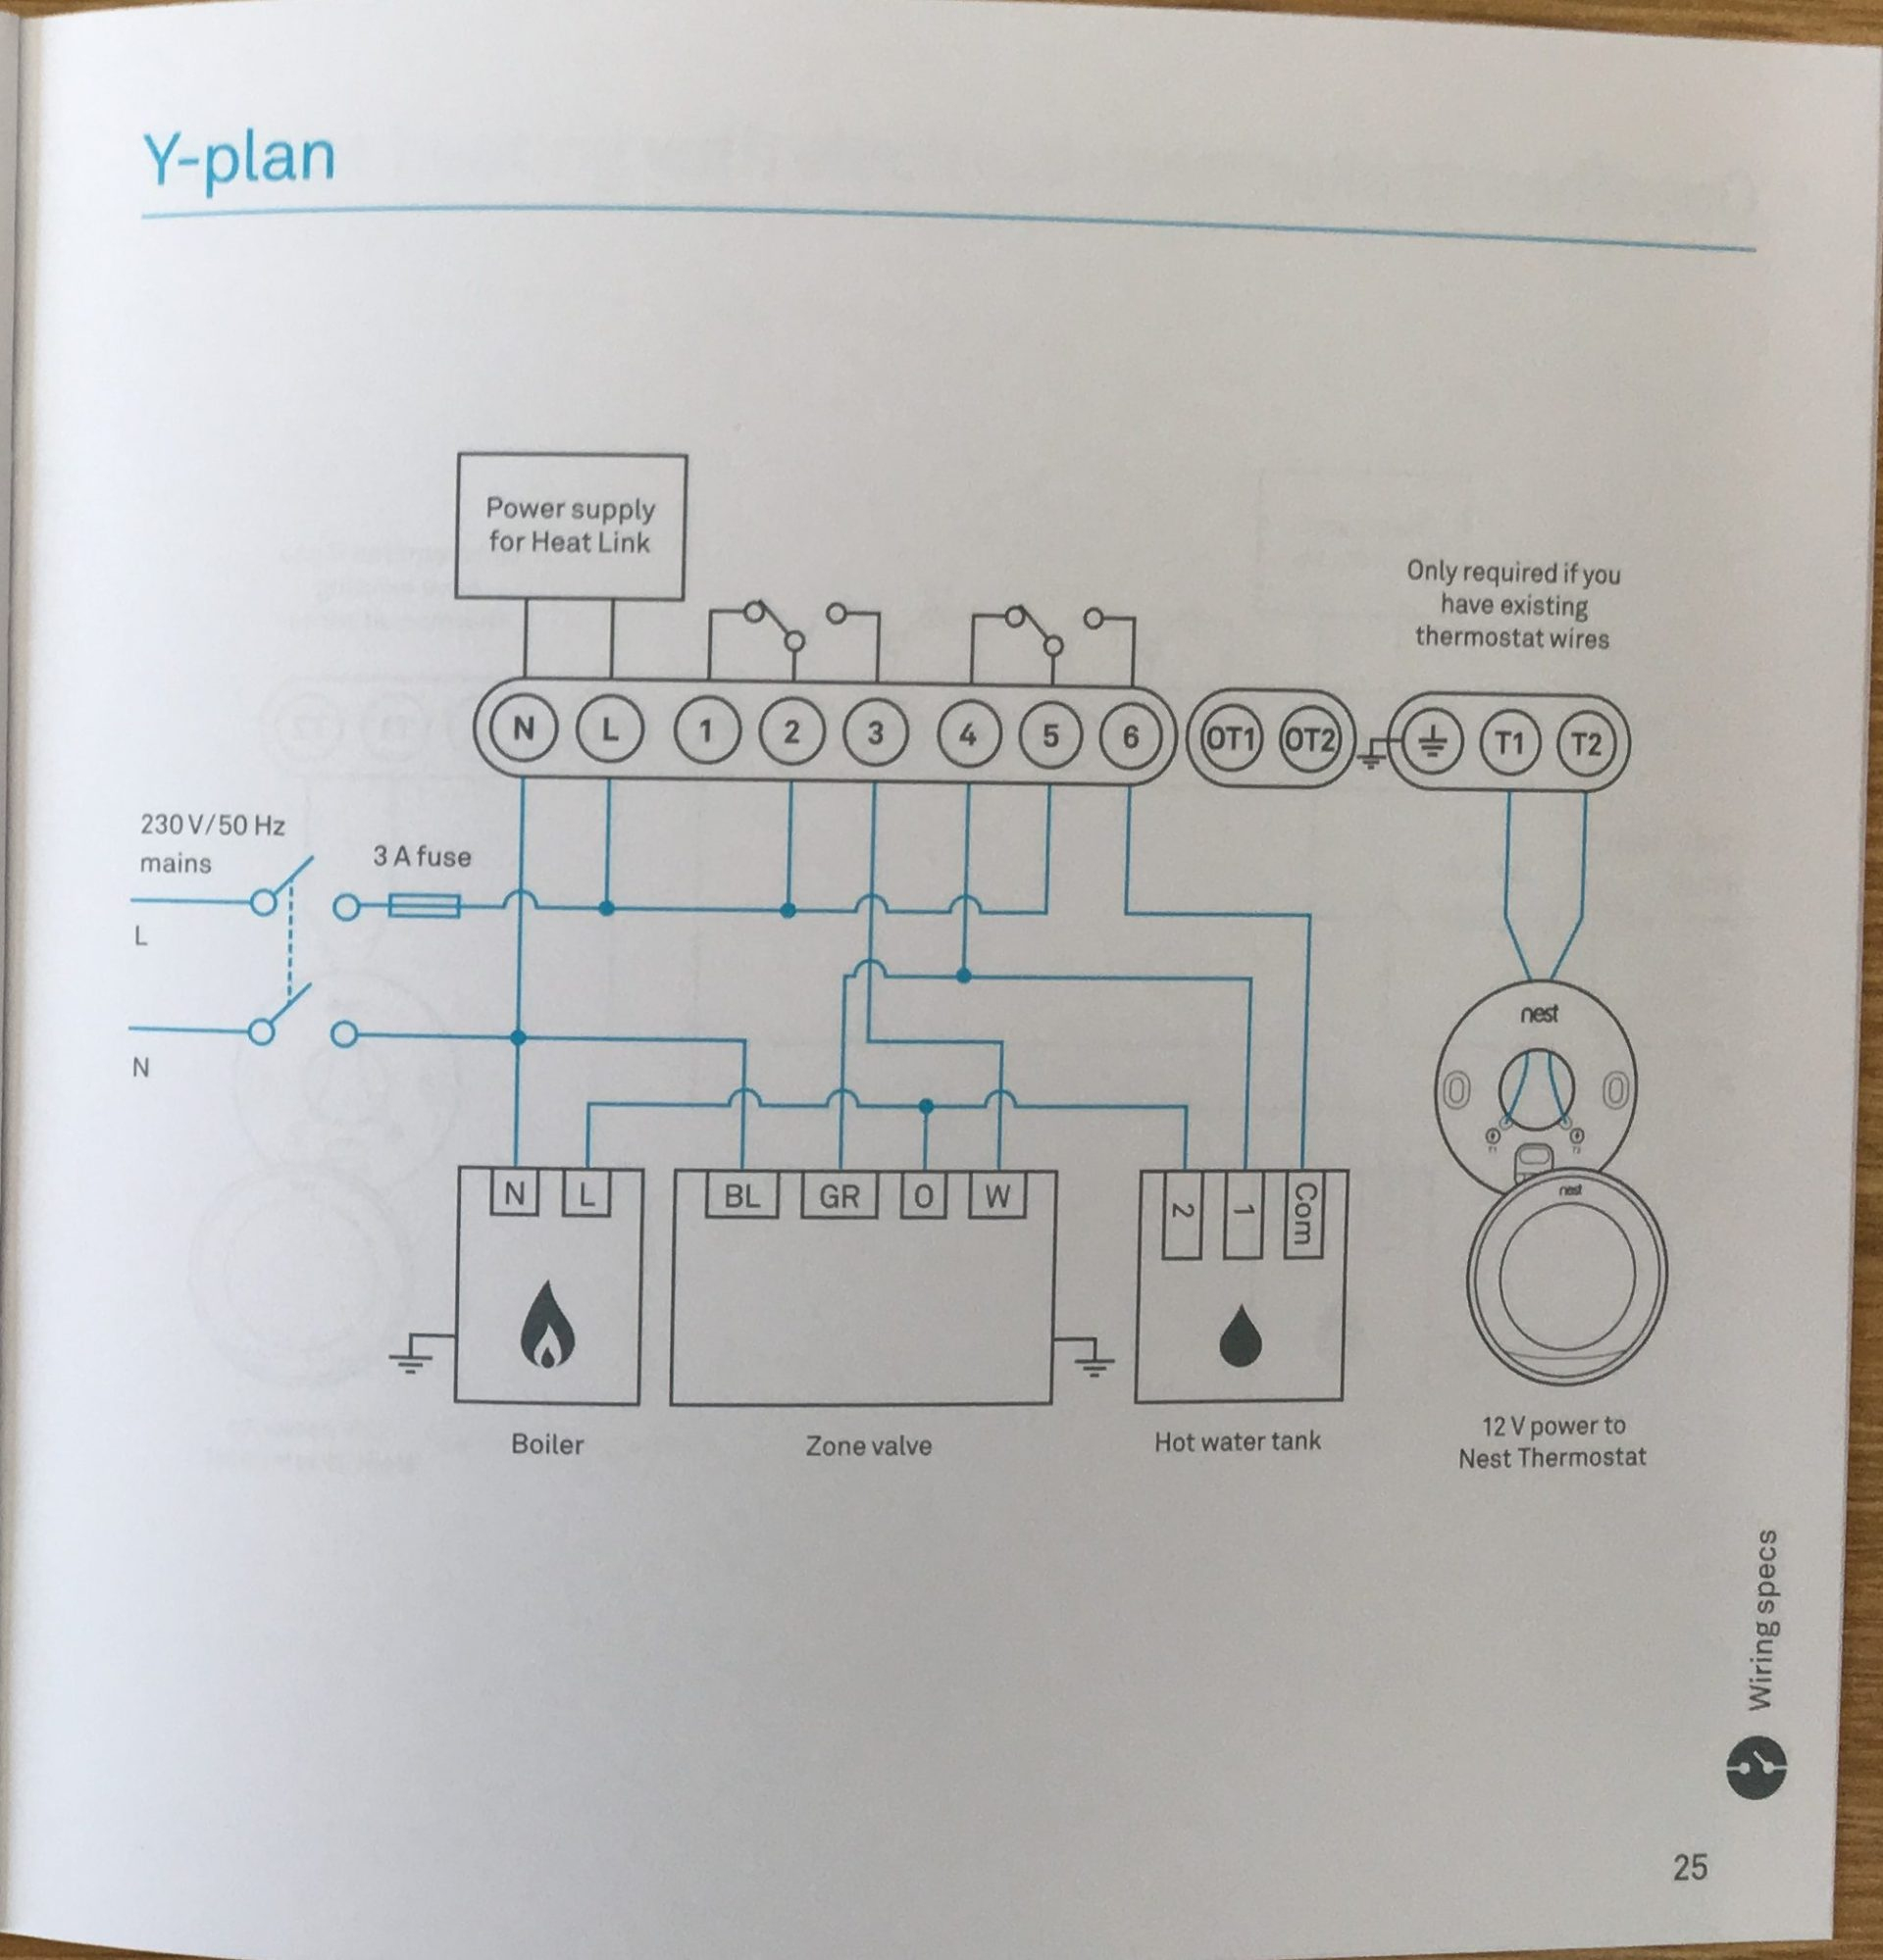 How To Install The Nest Learning Thermostat (3Rd Gen) In A Y-Plan - Nest Wiring Diagram Underfloor Heating